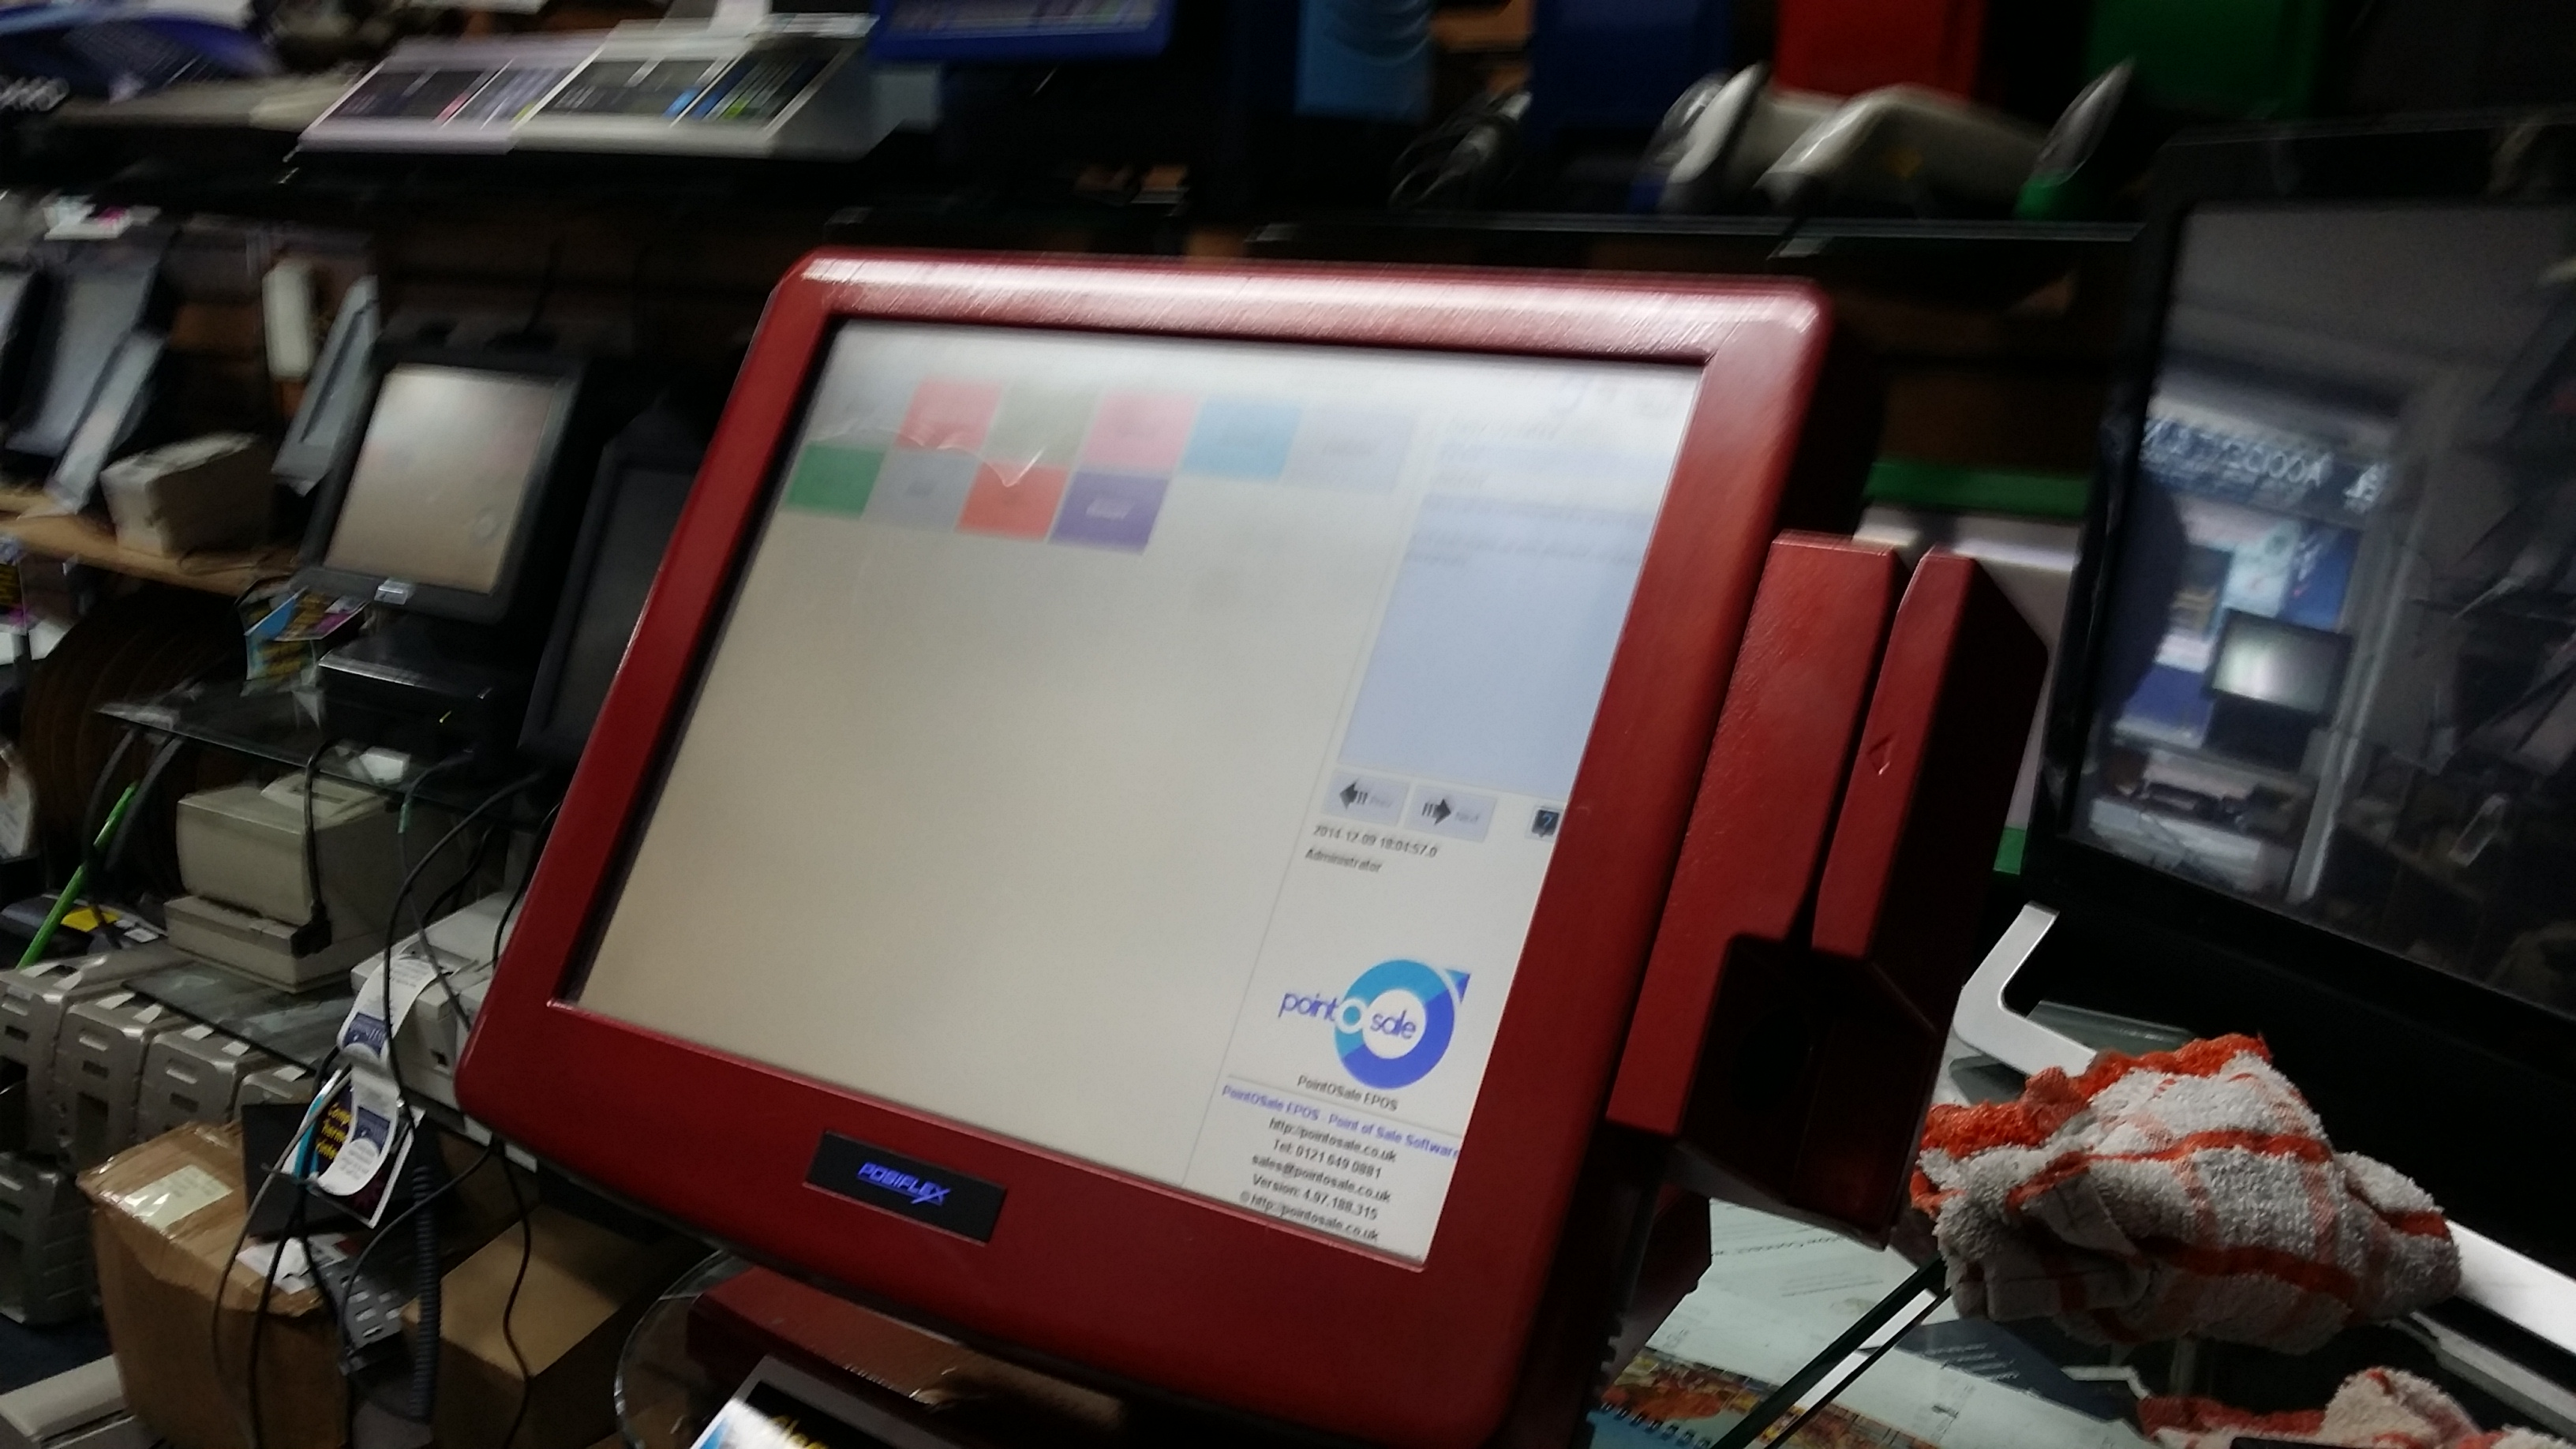 fully refinished fast dual thread epos with software and drawer